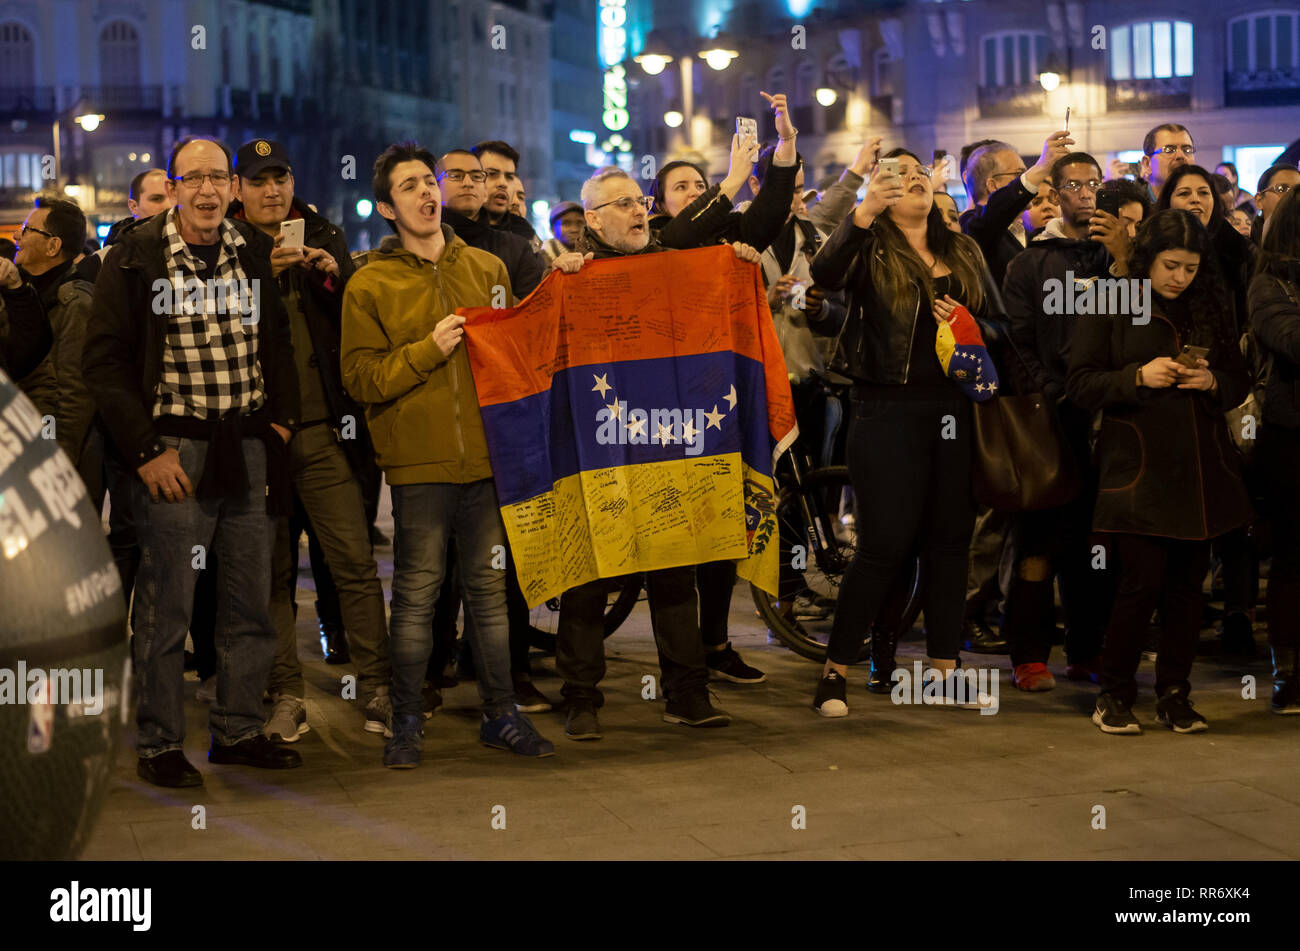 Madrid, Spain. 24th Feb, 2019. Clashes between supporters of Maduro and the opposition took place in Madrid. The origin of the dispute was a demonstration organized by the supporters of Maduro at Puerta del Sol to protest against the intervention of Spain in Venezuela. Venezuelan citizens of the opposition showed up and the intervention of the police was necesary to avoid any stronger confrontations between both parts.  In the picture, people protesting against Maduro holding the flag of Venezuela. Credit: Lora Grigorova/Alamy Live News - Stock Image